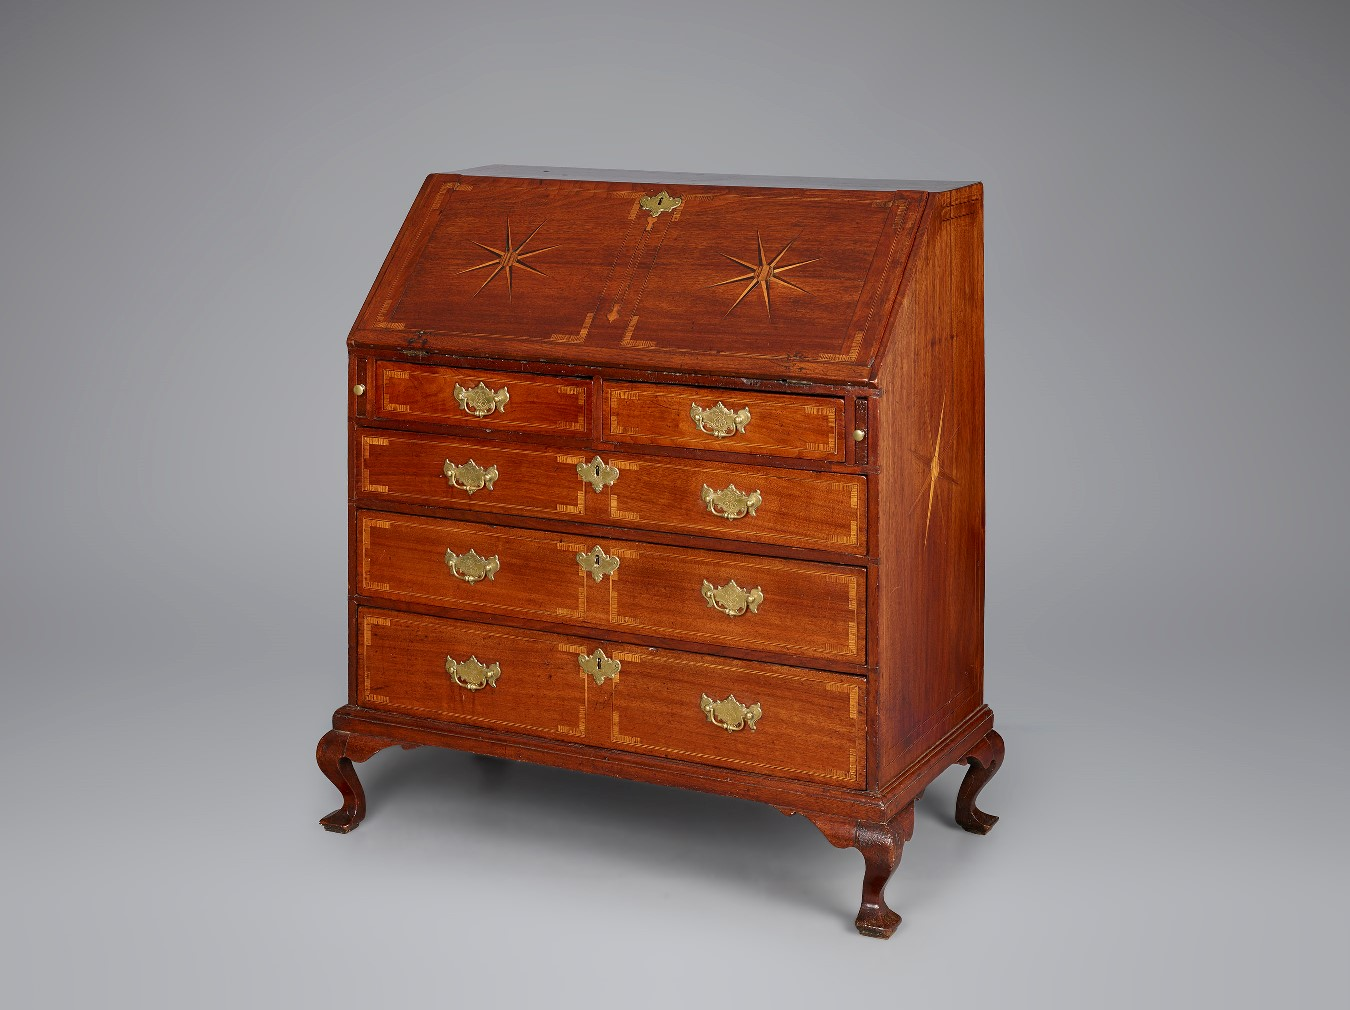 Slant Front Desk, Bristol, Rhode Island, 1740u201360. Walnut And Ash(?) And  Maple Inlay (primary); Chestnut And Pine (secondary). Private Collection  [RIF1642].